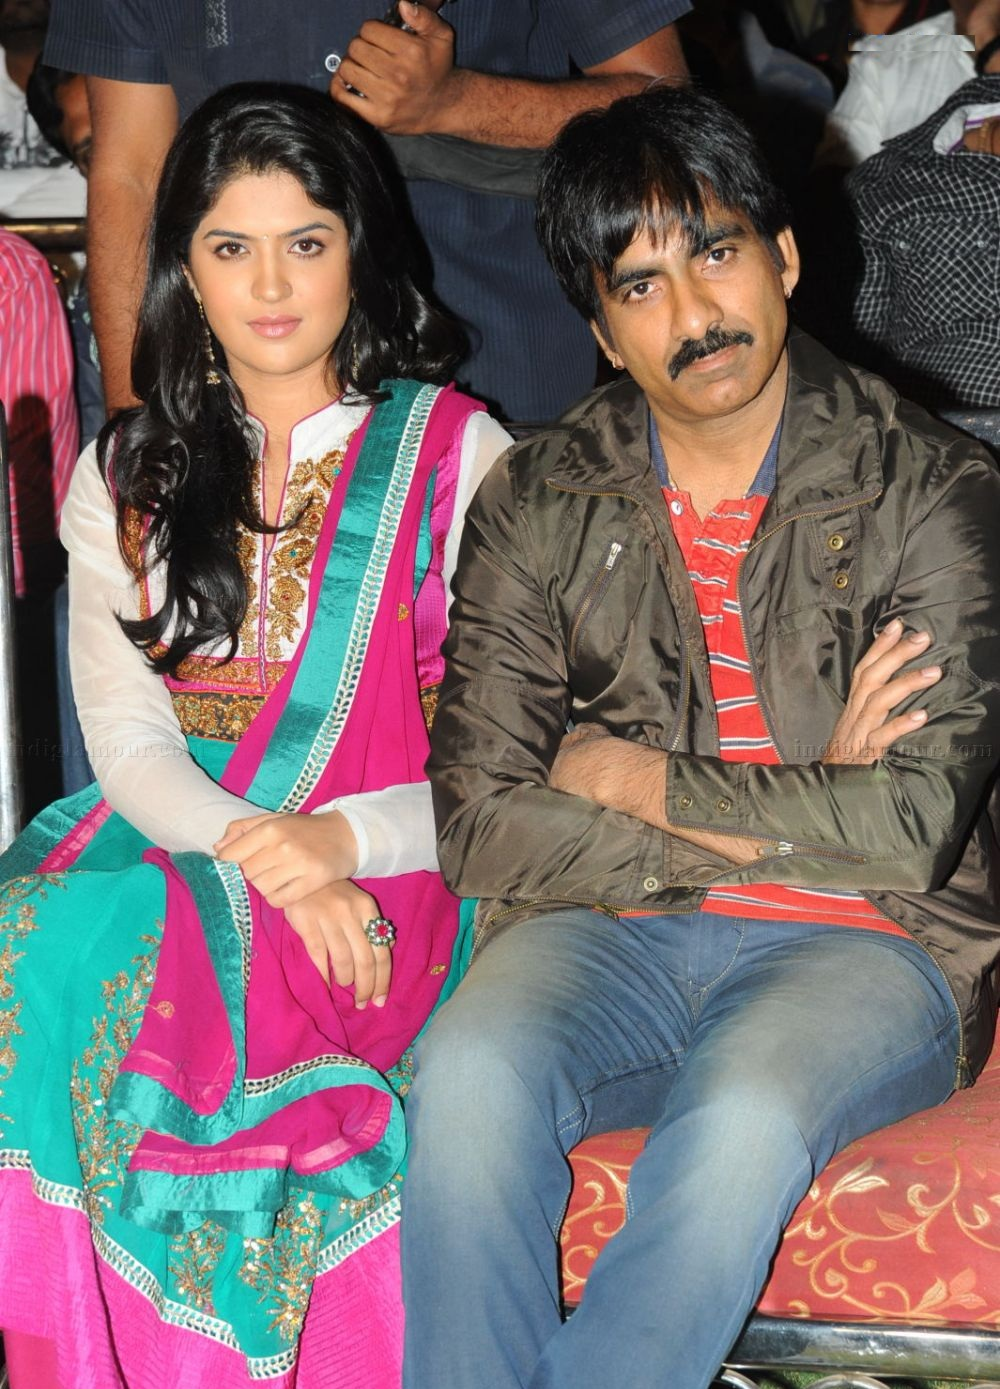 35+ ravi teja age, latest pictures hd pics photoshoots